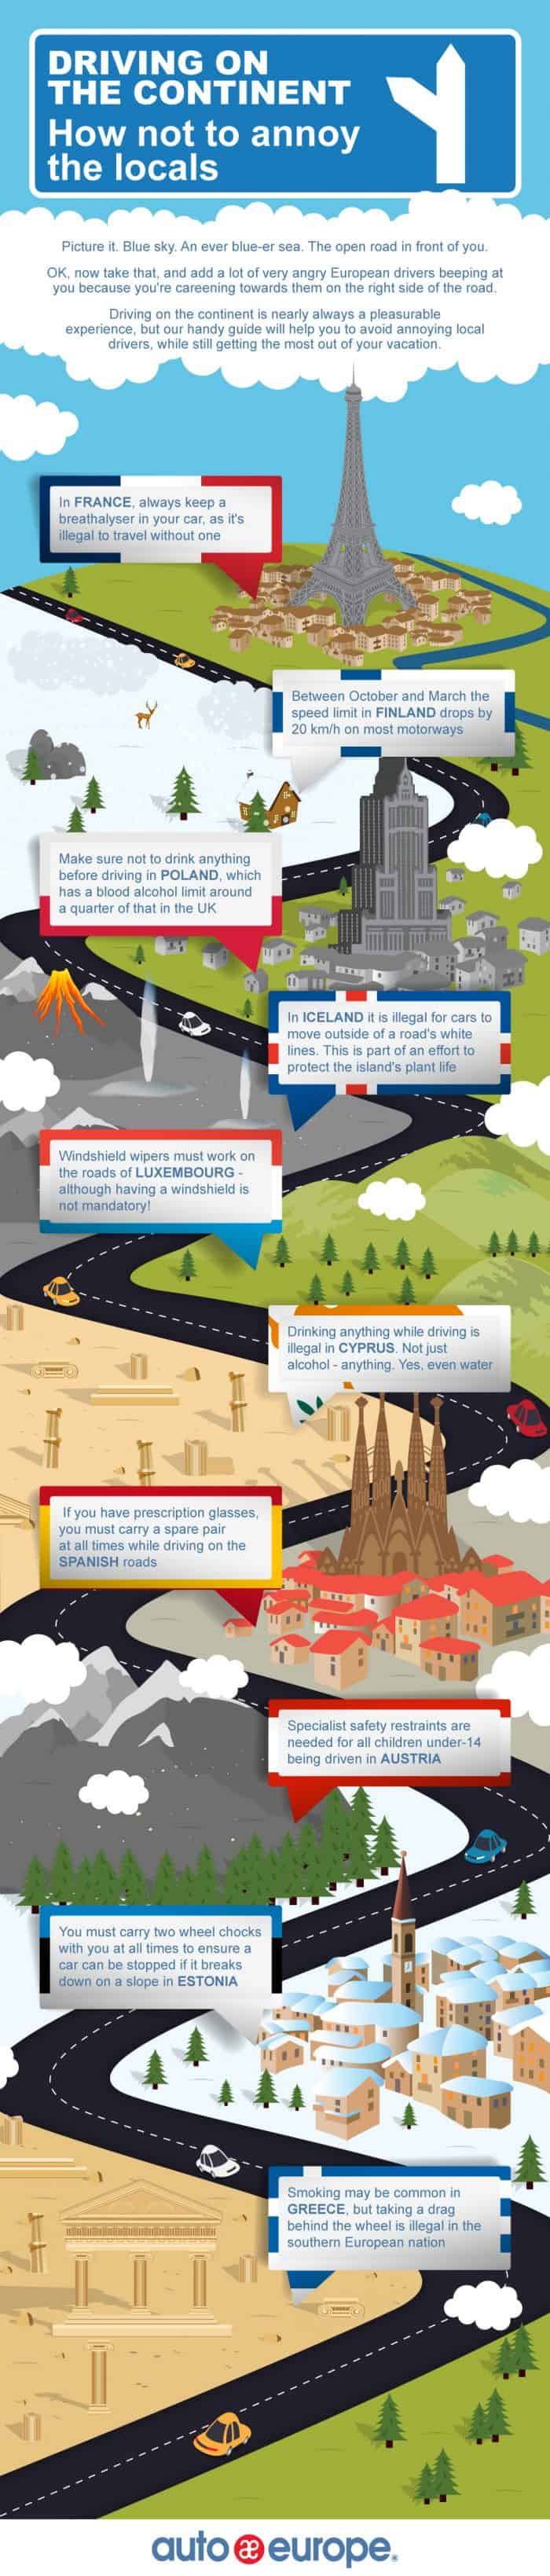 infographic describes european driving laws in finland, poland, cyprus, france and elsewhere